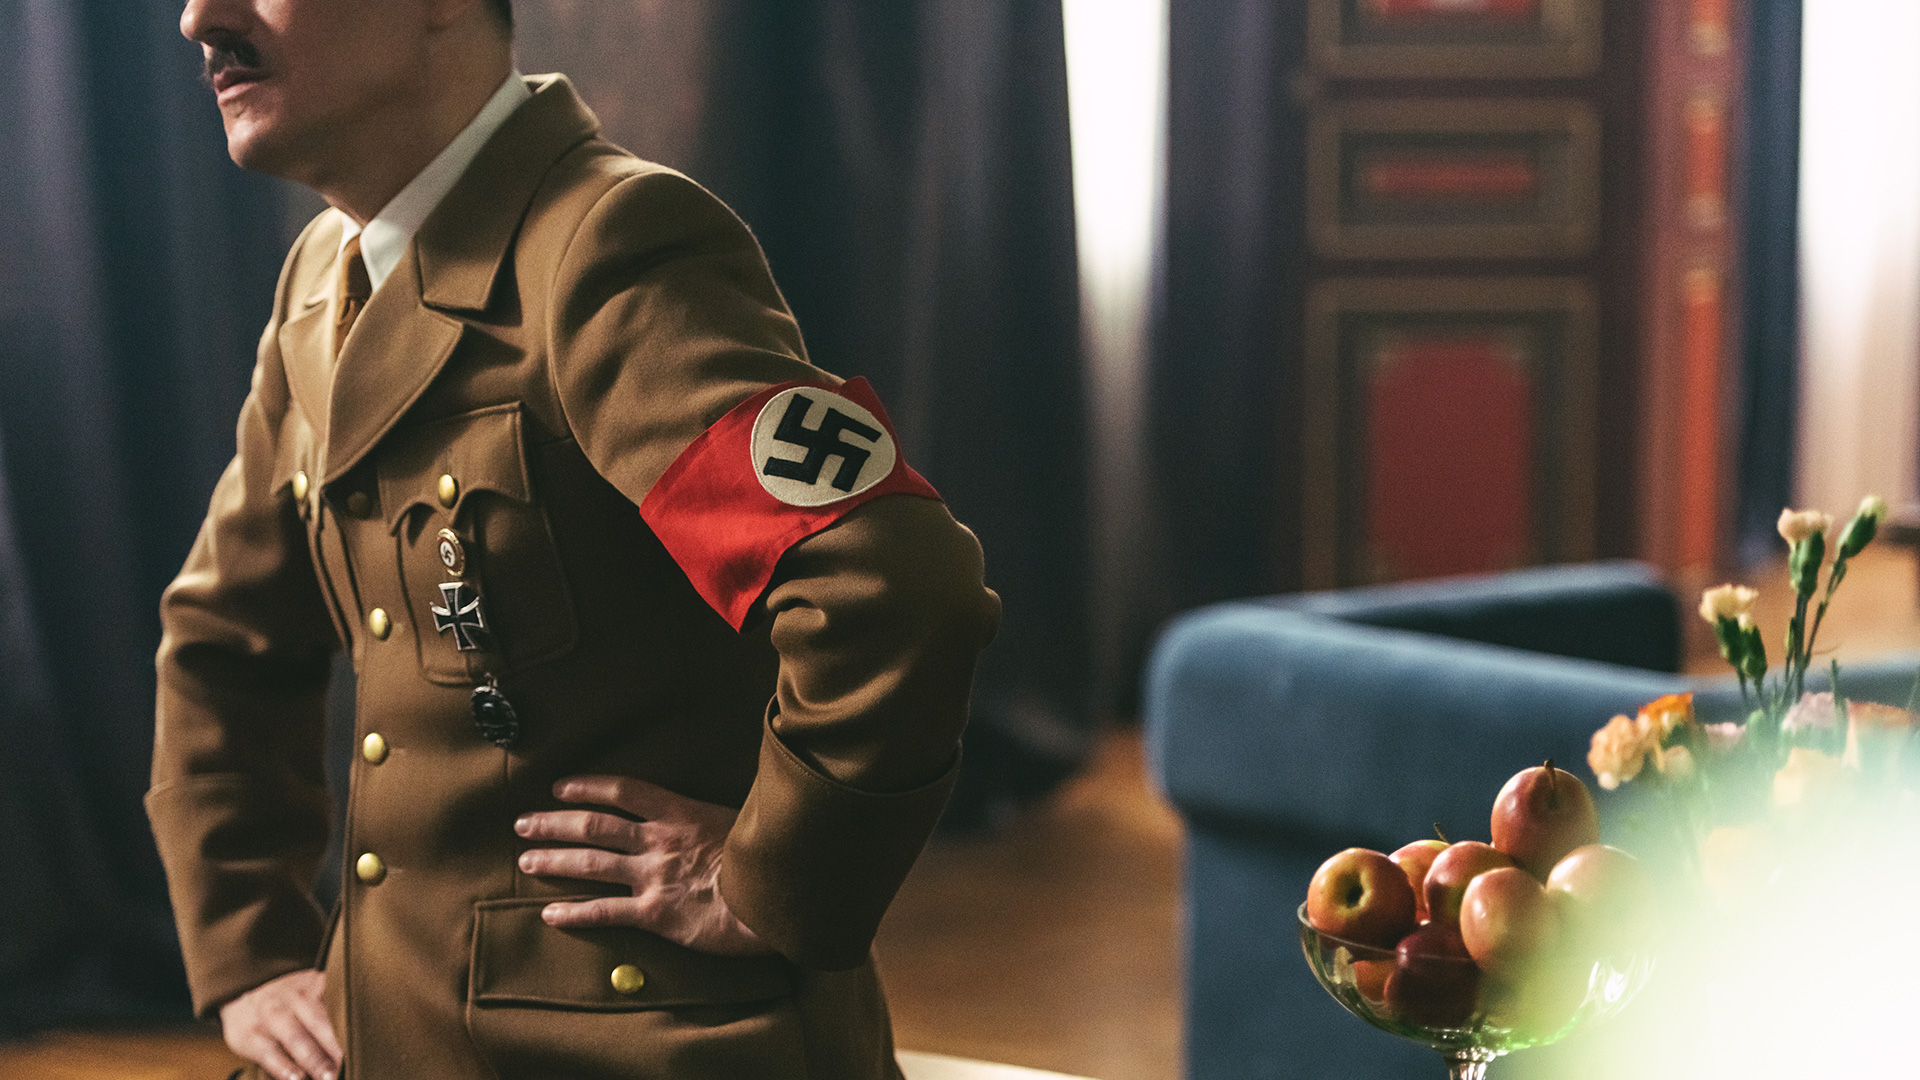 Rise of the Nazis Episode 3: Night of the Long Knives